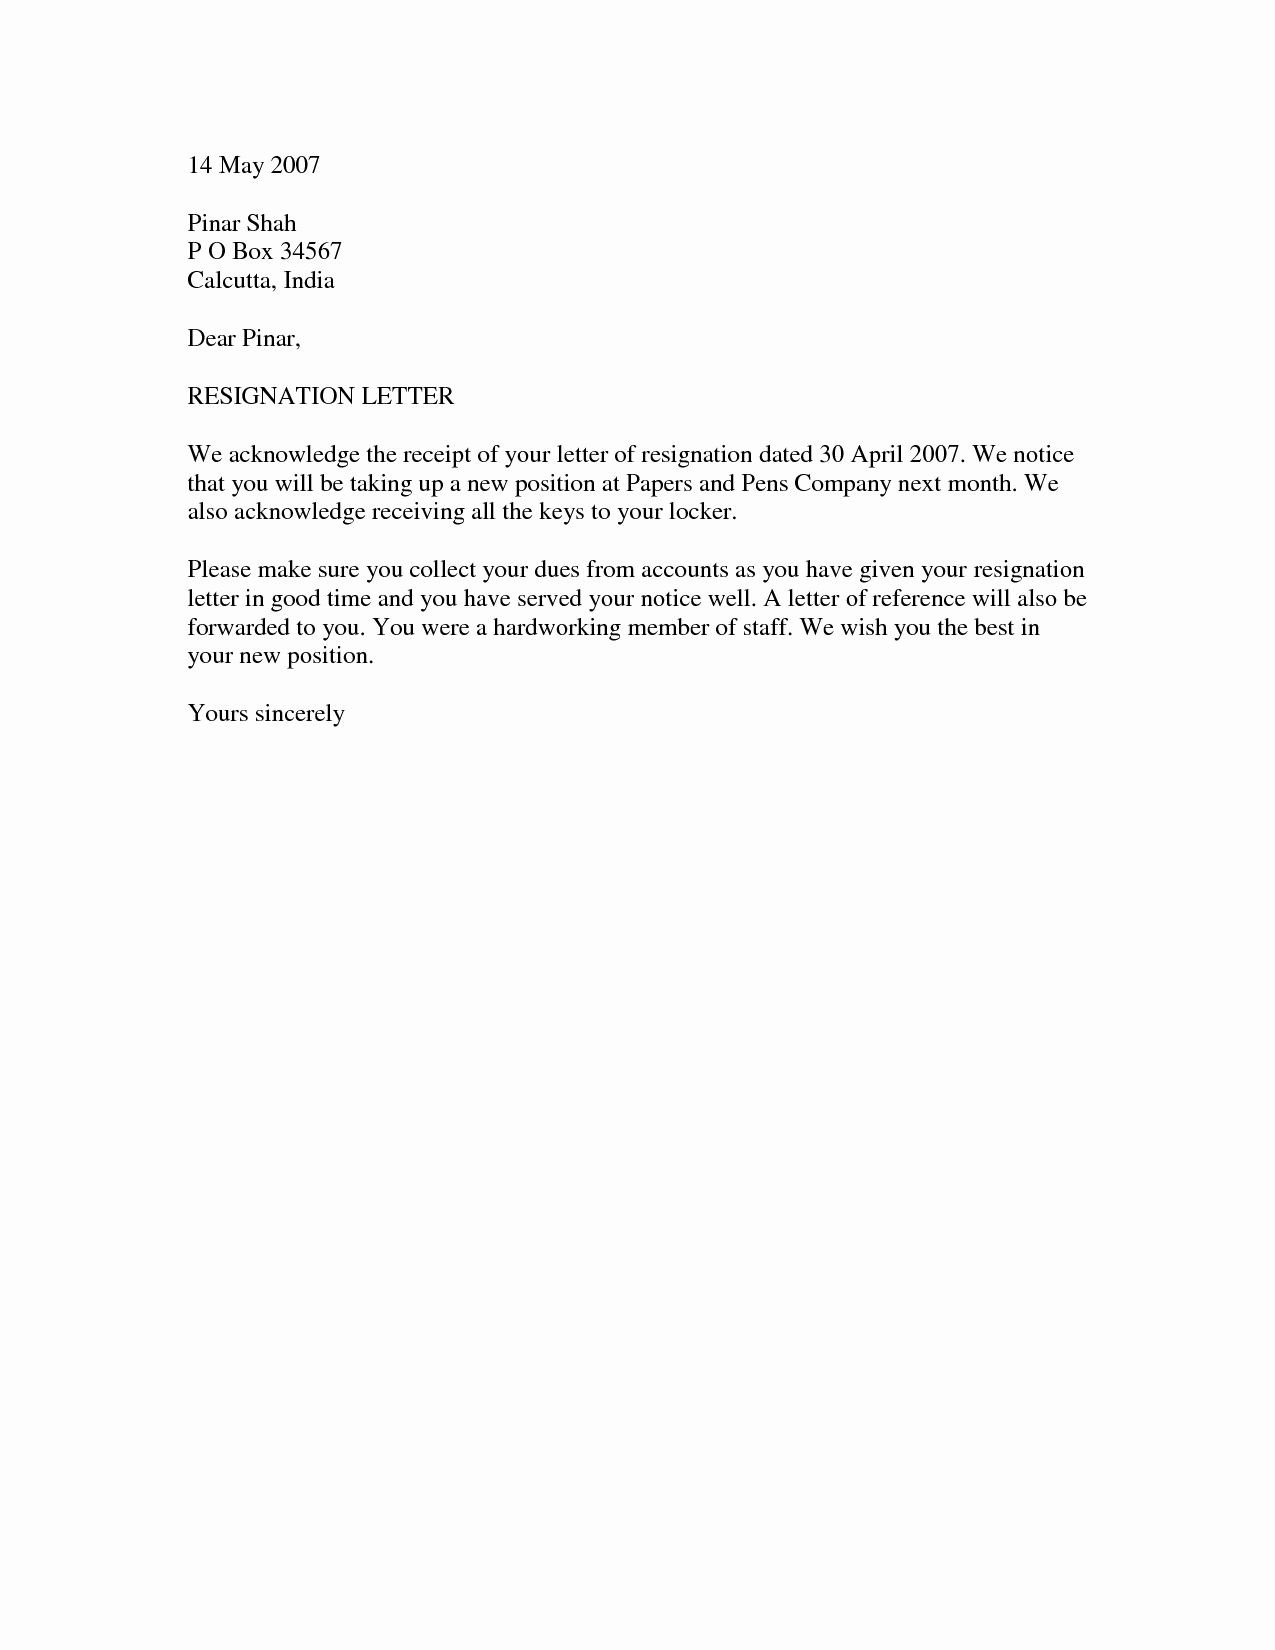 Resignation Letter format In Word Lovely Resignation Letter Template